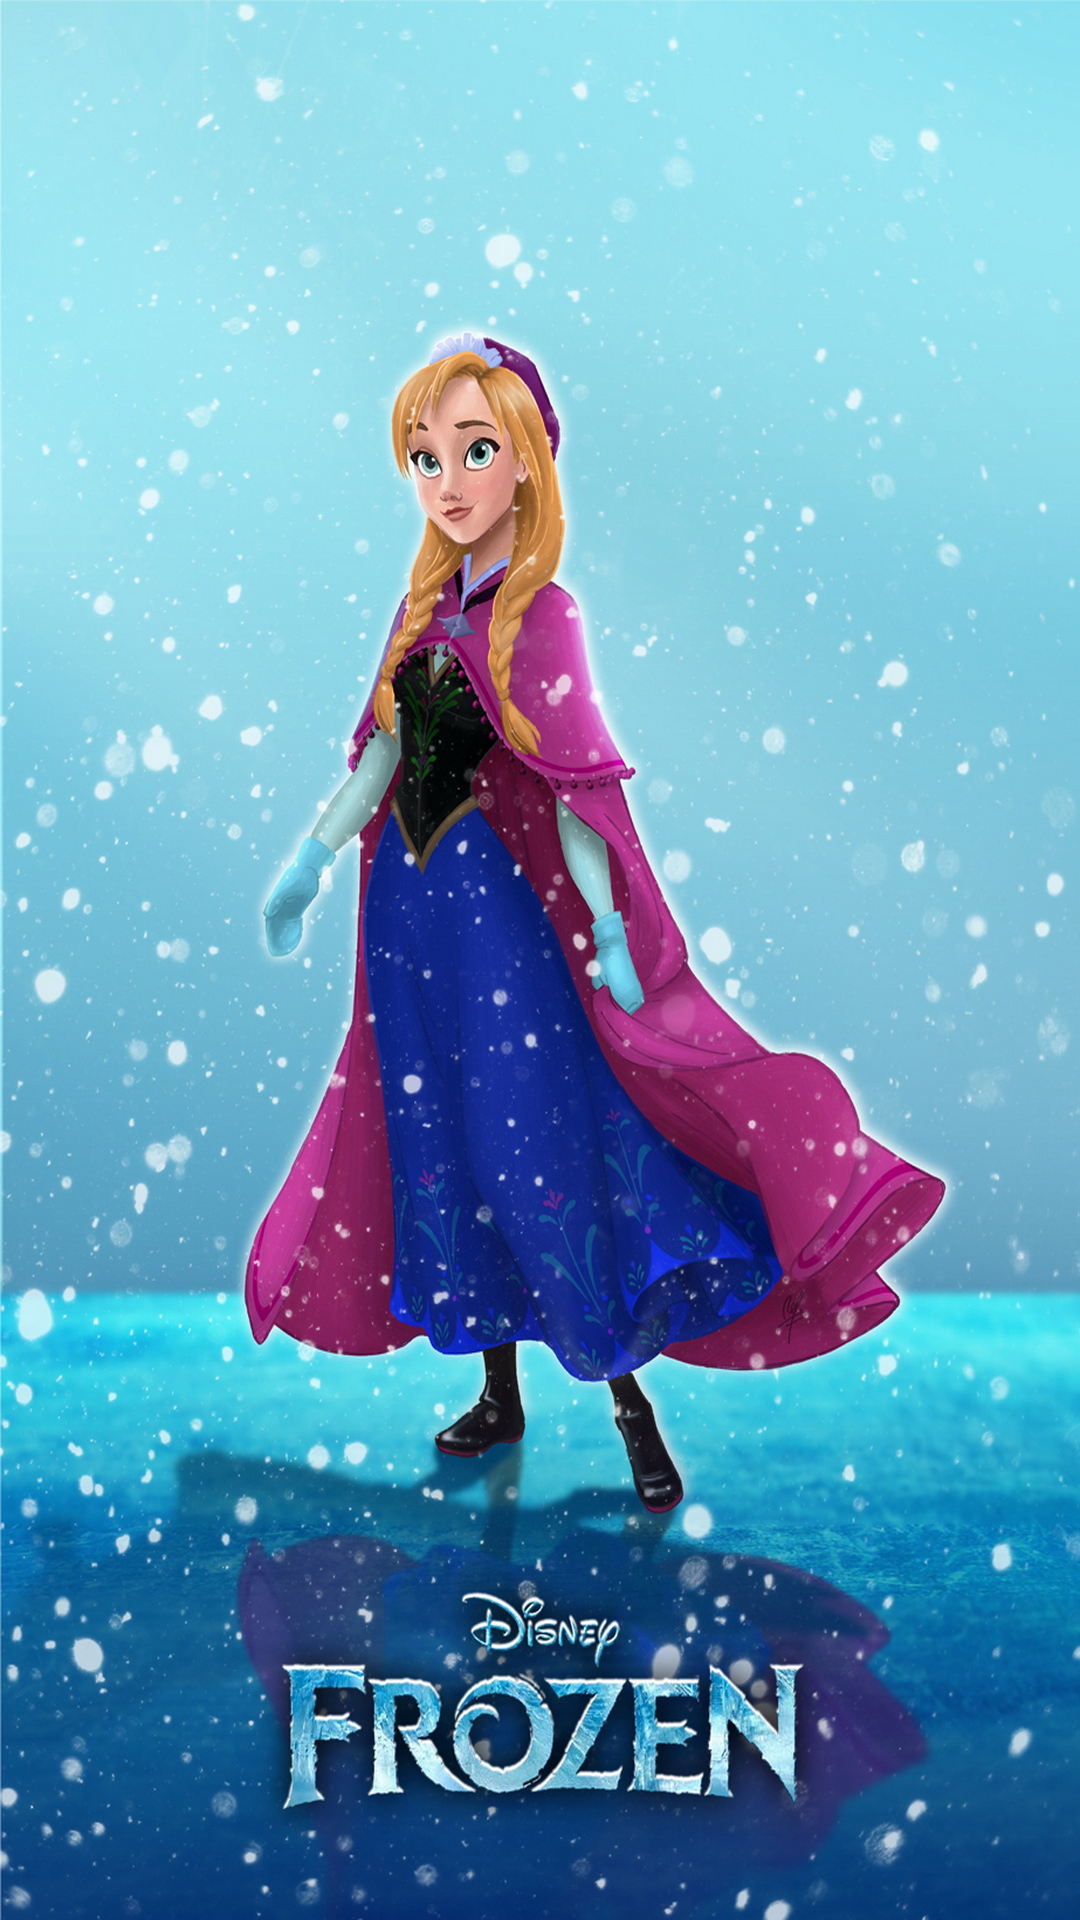 Hd wallpaper mobile phone - Hd Disney Frozen Wallpapers For Mobile Phone 1080x1920